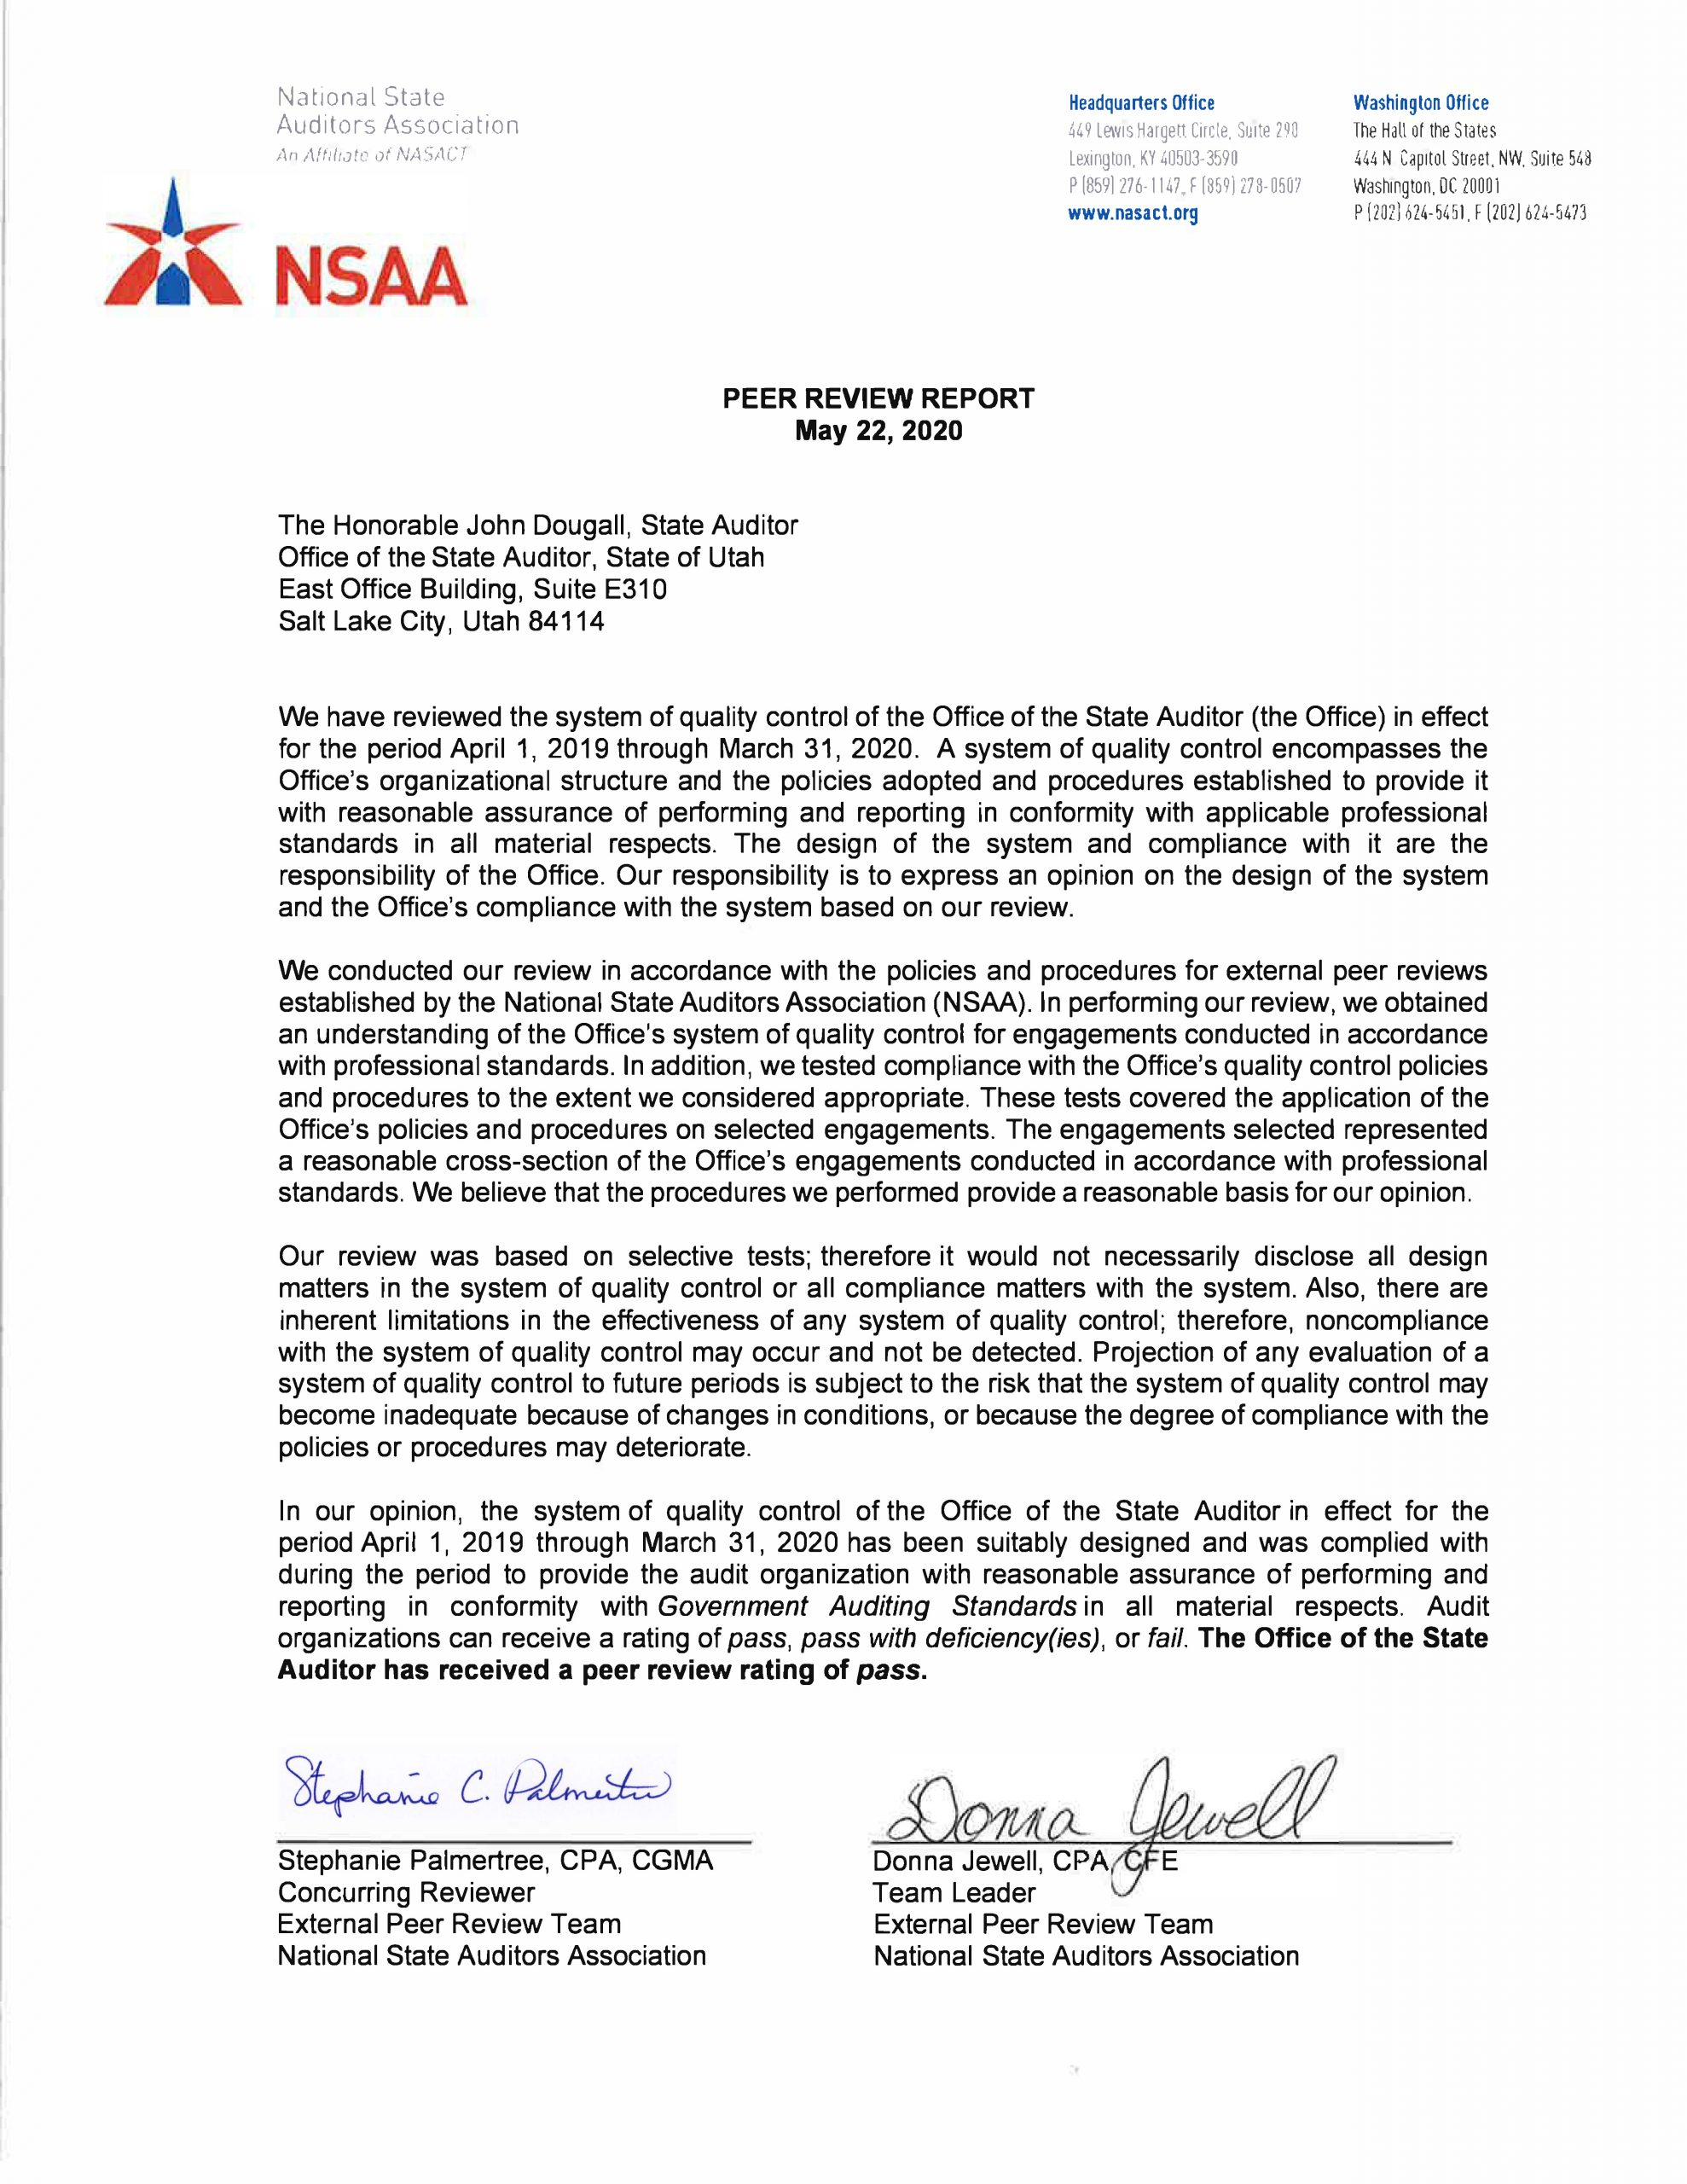 Letter from the National State Auditors Association OSA Peer Review 2020 05 22